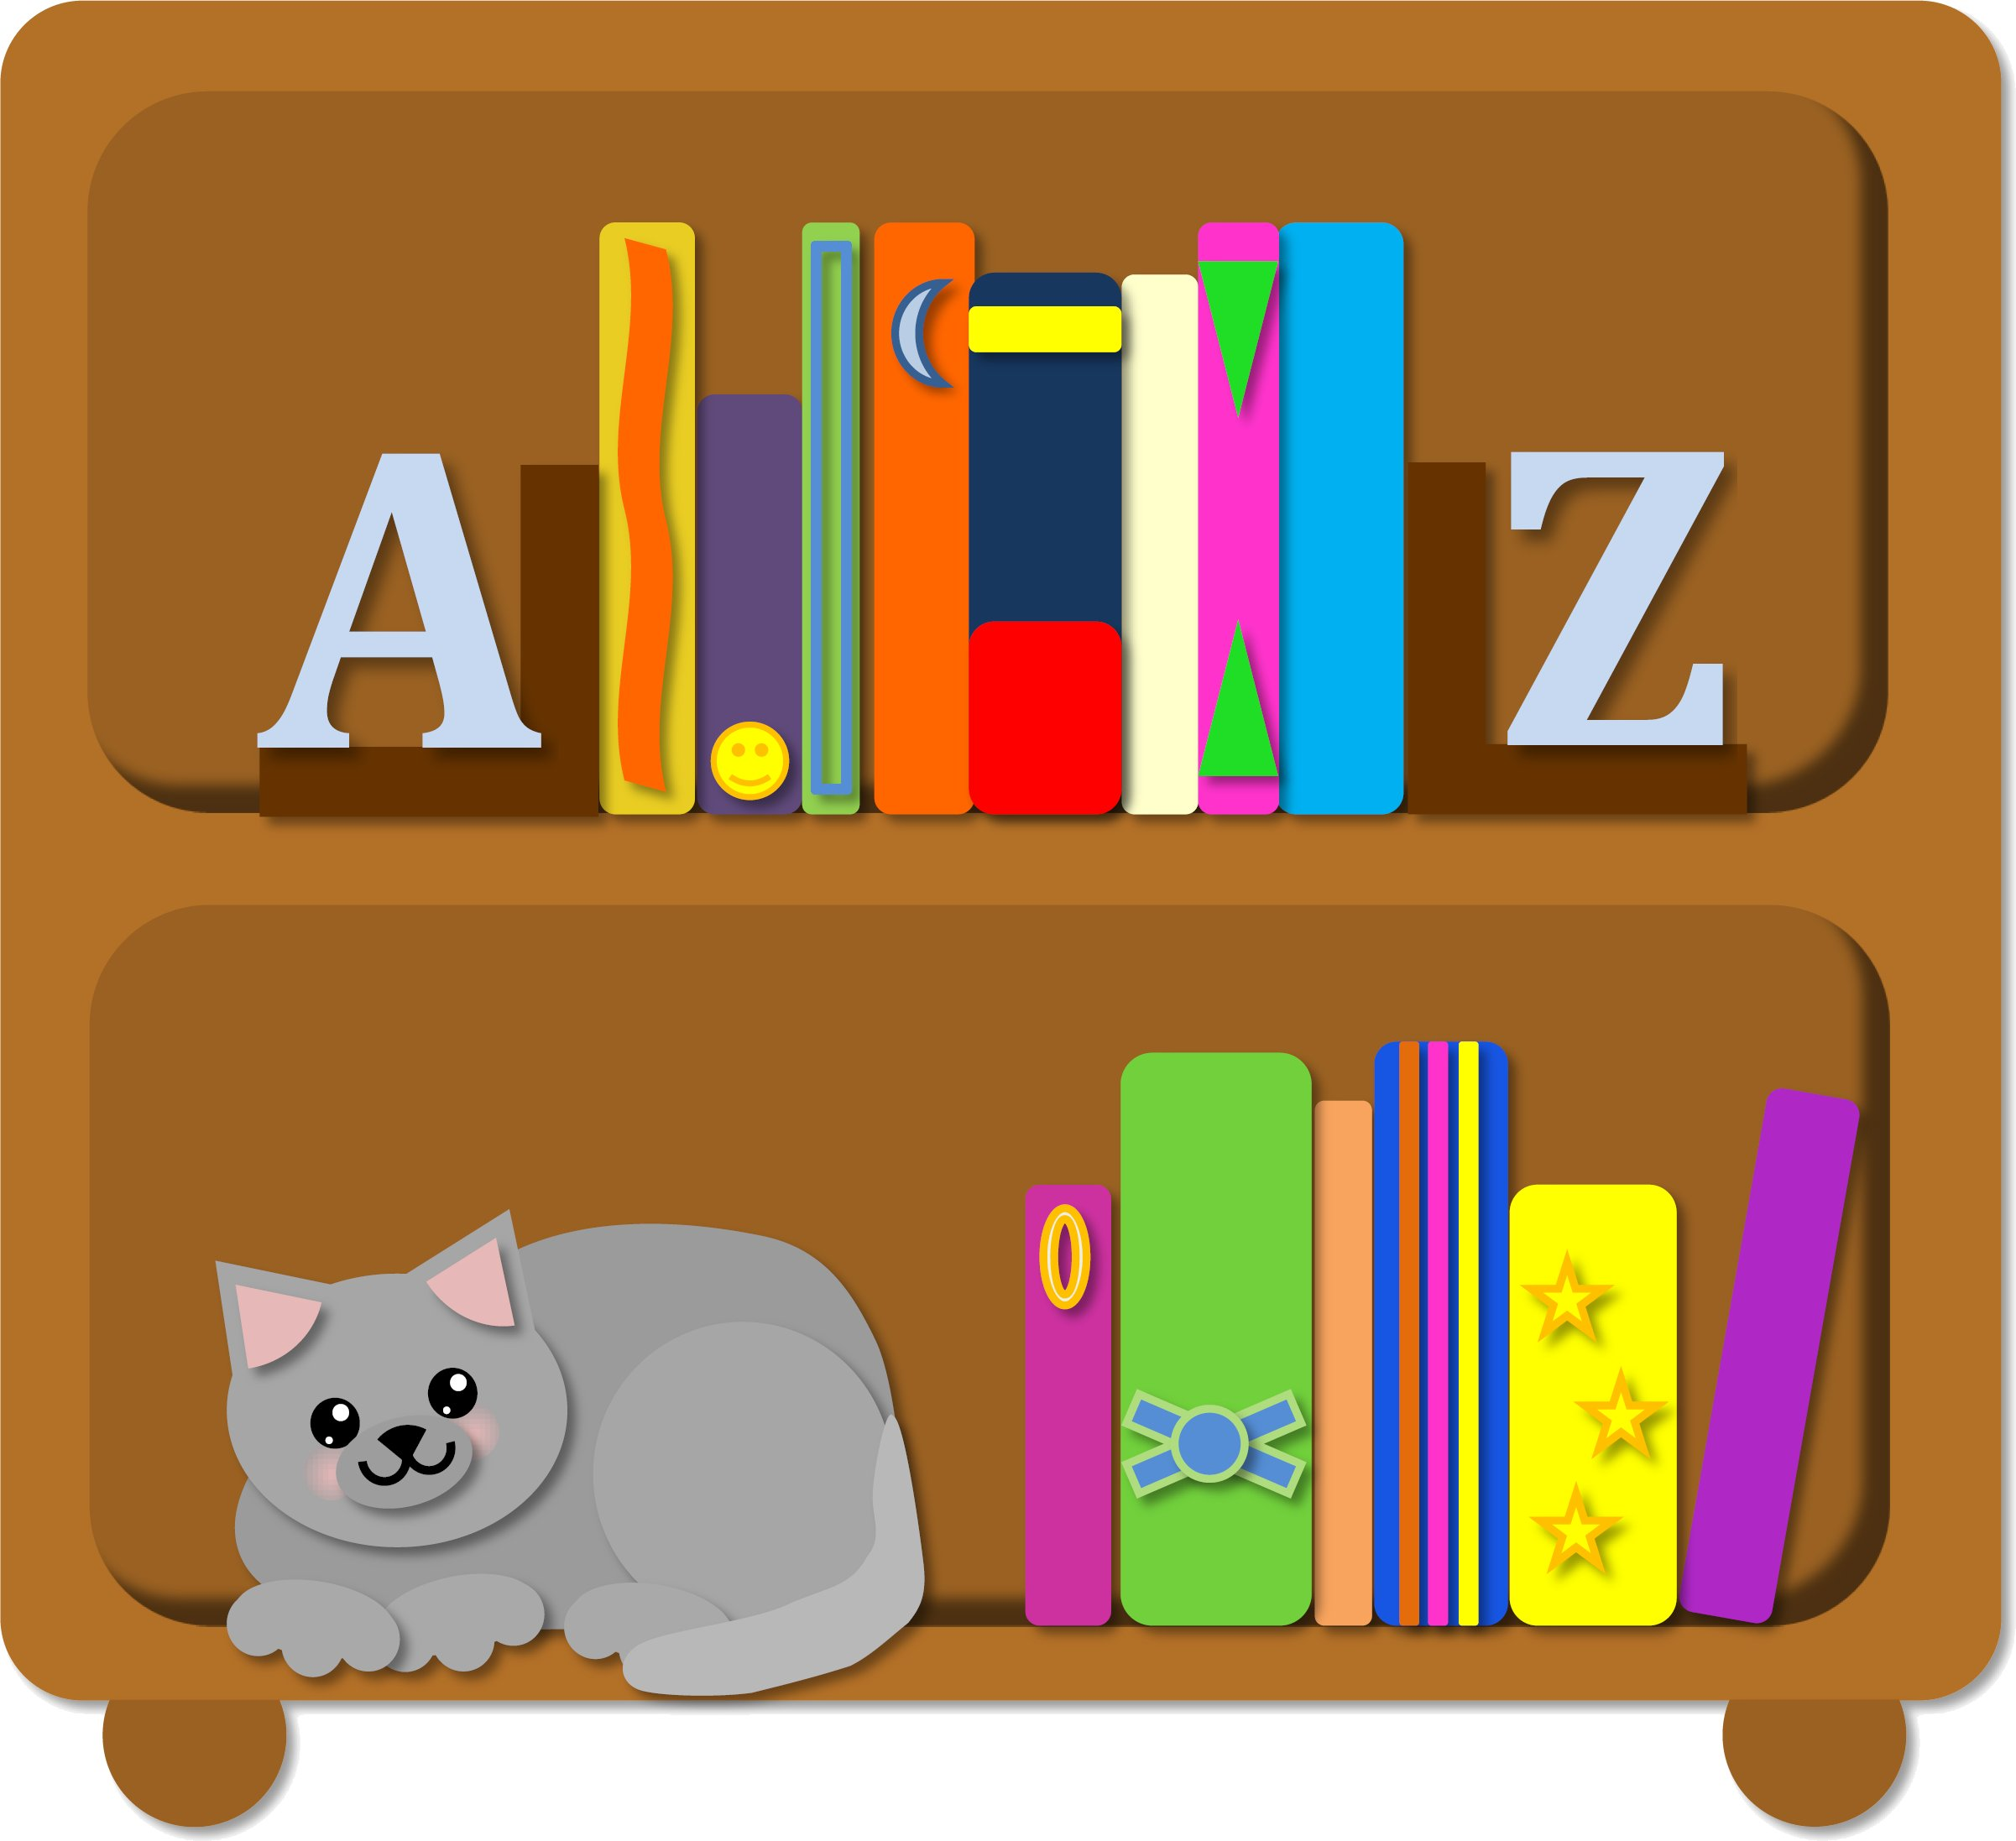 Book case clipart clip royalty free library Bookcase Clip Art - ClipArt Best clip royalty free library